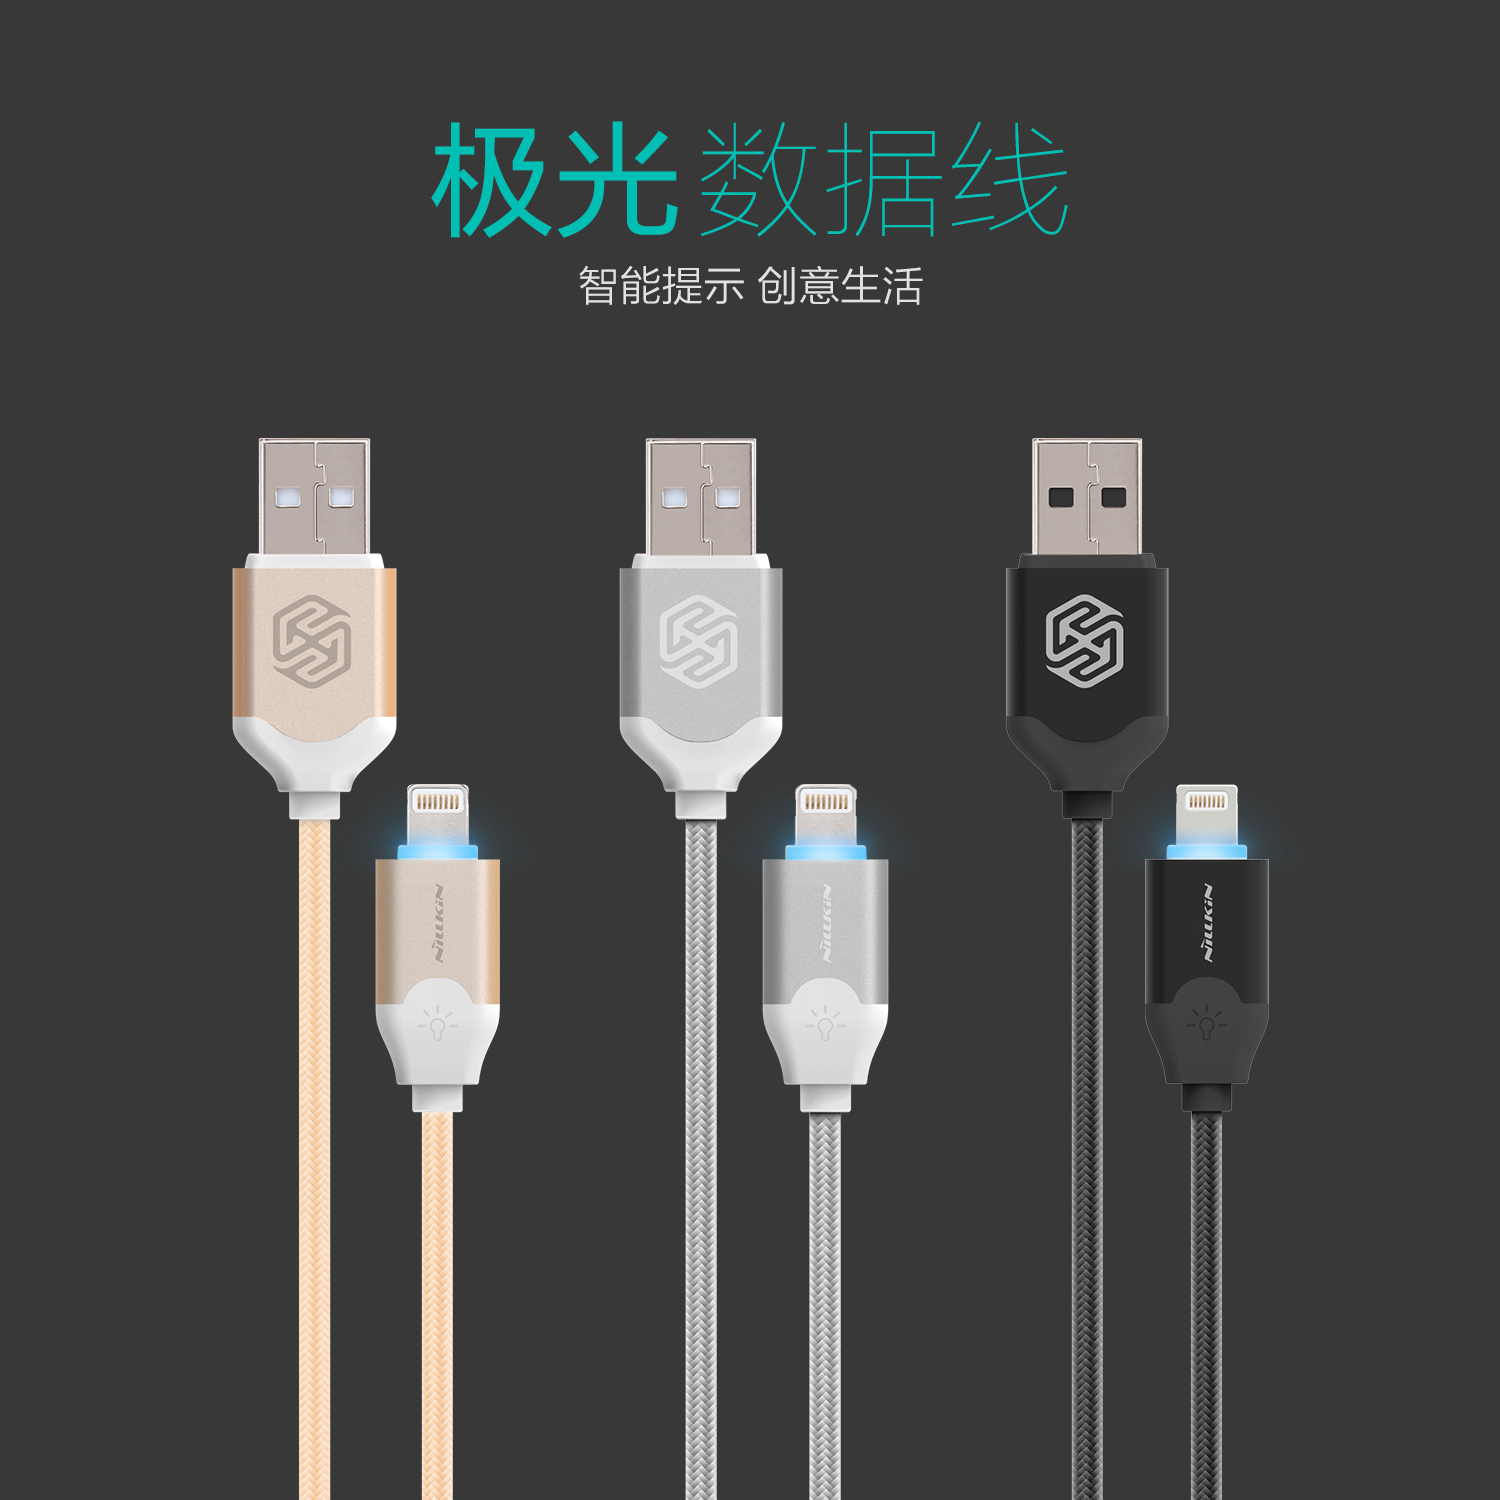 Nair golden apple data cable iphone6s/5/2a usb charging cable data cable apple apple 5s 6 data cable